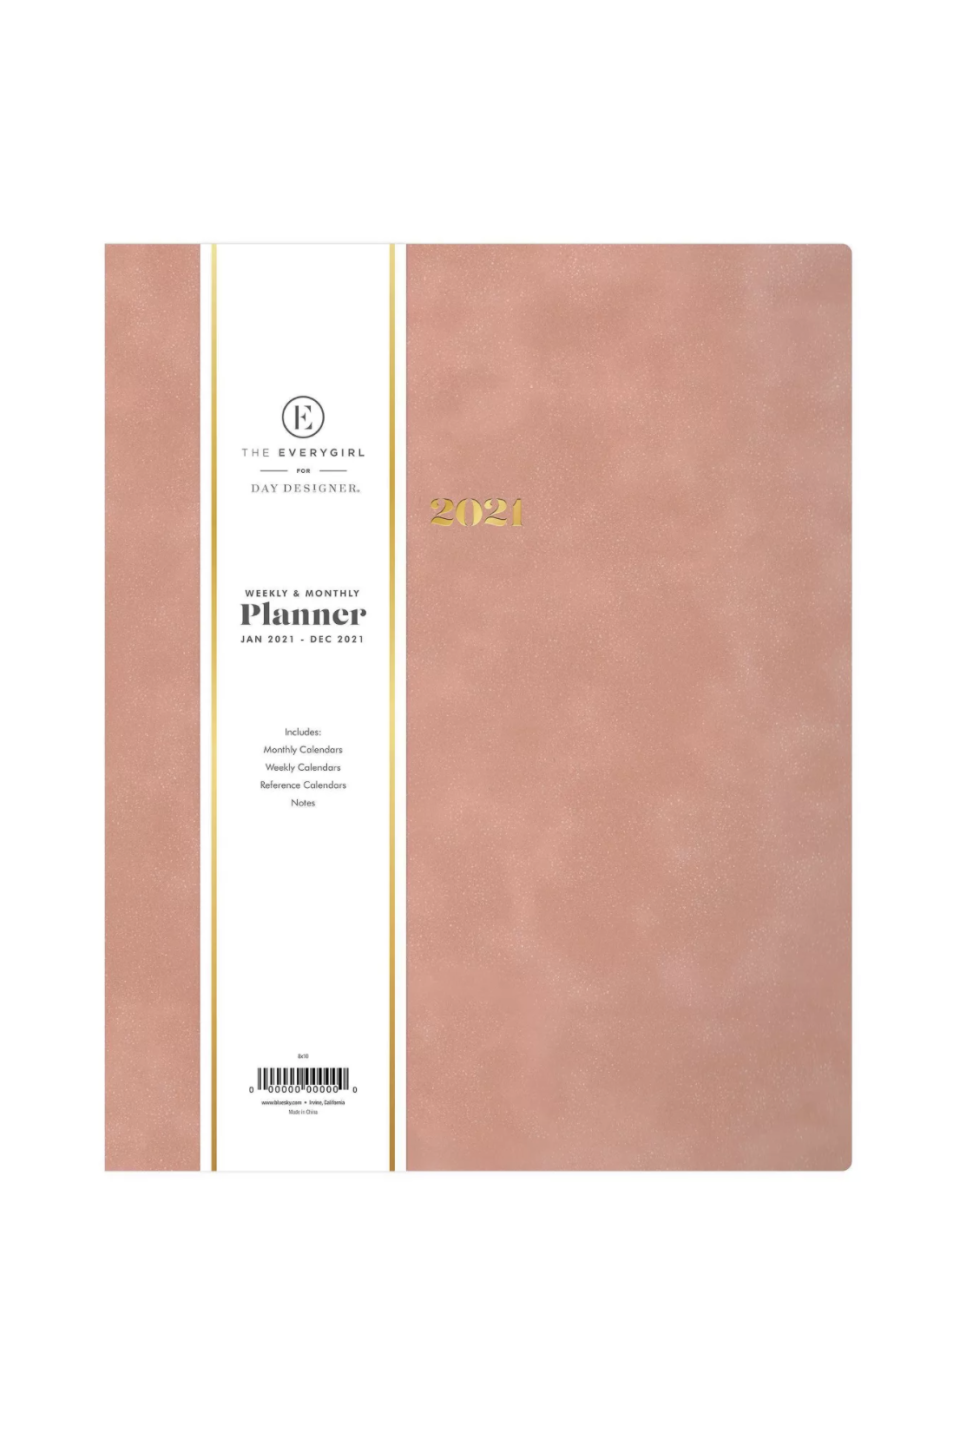 """<p><strong>The Everygirl</strong></p><p><strong>$16.99</strong></p><p><a href=""""https://www.target.com/p/2021-the-everygirl-planner-8-34-x-10-34-faux-leather-weekly-monthly-bookbound-desert-rose-blue-sky/-/A-80958626#lnk=sametab"""" rel=""""nofollow noopener"""" target=""""_blank"""" data-ylk=""""slk:SHOP IT"""" class=""""link rapid-noclick-resp"""">SHOP IT</a></p><p>The Everygirl's newly-launched planner and <a href=""""https://www.marieclaire.com/home/g34988928/best-wall-calendars/"""" rel=""""nofollow noopener"""" target=""""_blank"""" data-ylk=""""slk:wall calendar"""" class=""""link rapid-noclick-resp"""">wall calendar</a> collection with Day Designer, available at Target, includes this 8 x 10 blush pick for those of us who like to make sure we have plenty of space for our large handwriting. Other highlights from the collection include <a href=""""https://www.target.com/p/2021-the-everygirl-career-planner-7-34-x-9-34-weekly-monthly-wirebound-mist-blue-sky/-/A-80373236#lnk=sametab"""" rel=""""nofollow noopener"""" target=""""_blank"""" data-ylk=""""slk:The Career Planner"""" class=""""link rapid-noclick-resp"""">The Career Planner</a> and the <a href=""""https://www.target.com/p/2021-the-everygirl-30-day-challenge-planner-7-34-x-9-34-weekly-monthly-wirebound-blue-blue-sky/-/A-80373207#lnk=sametab"""" rel=""""nofollow noopener"""" target=""""_blank"""" data-ylk=""""slk:30 Day Challenge Planner"""" class=""""link rapid-noclick-resp"""">30 Day Challenge Planner</a>.</p>"""